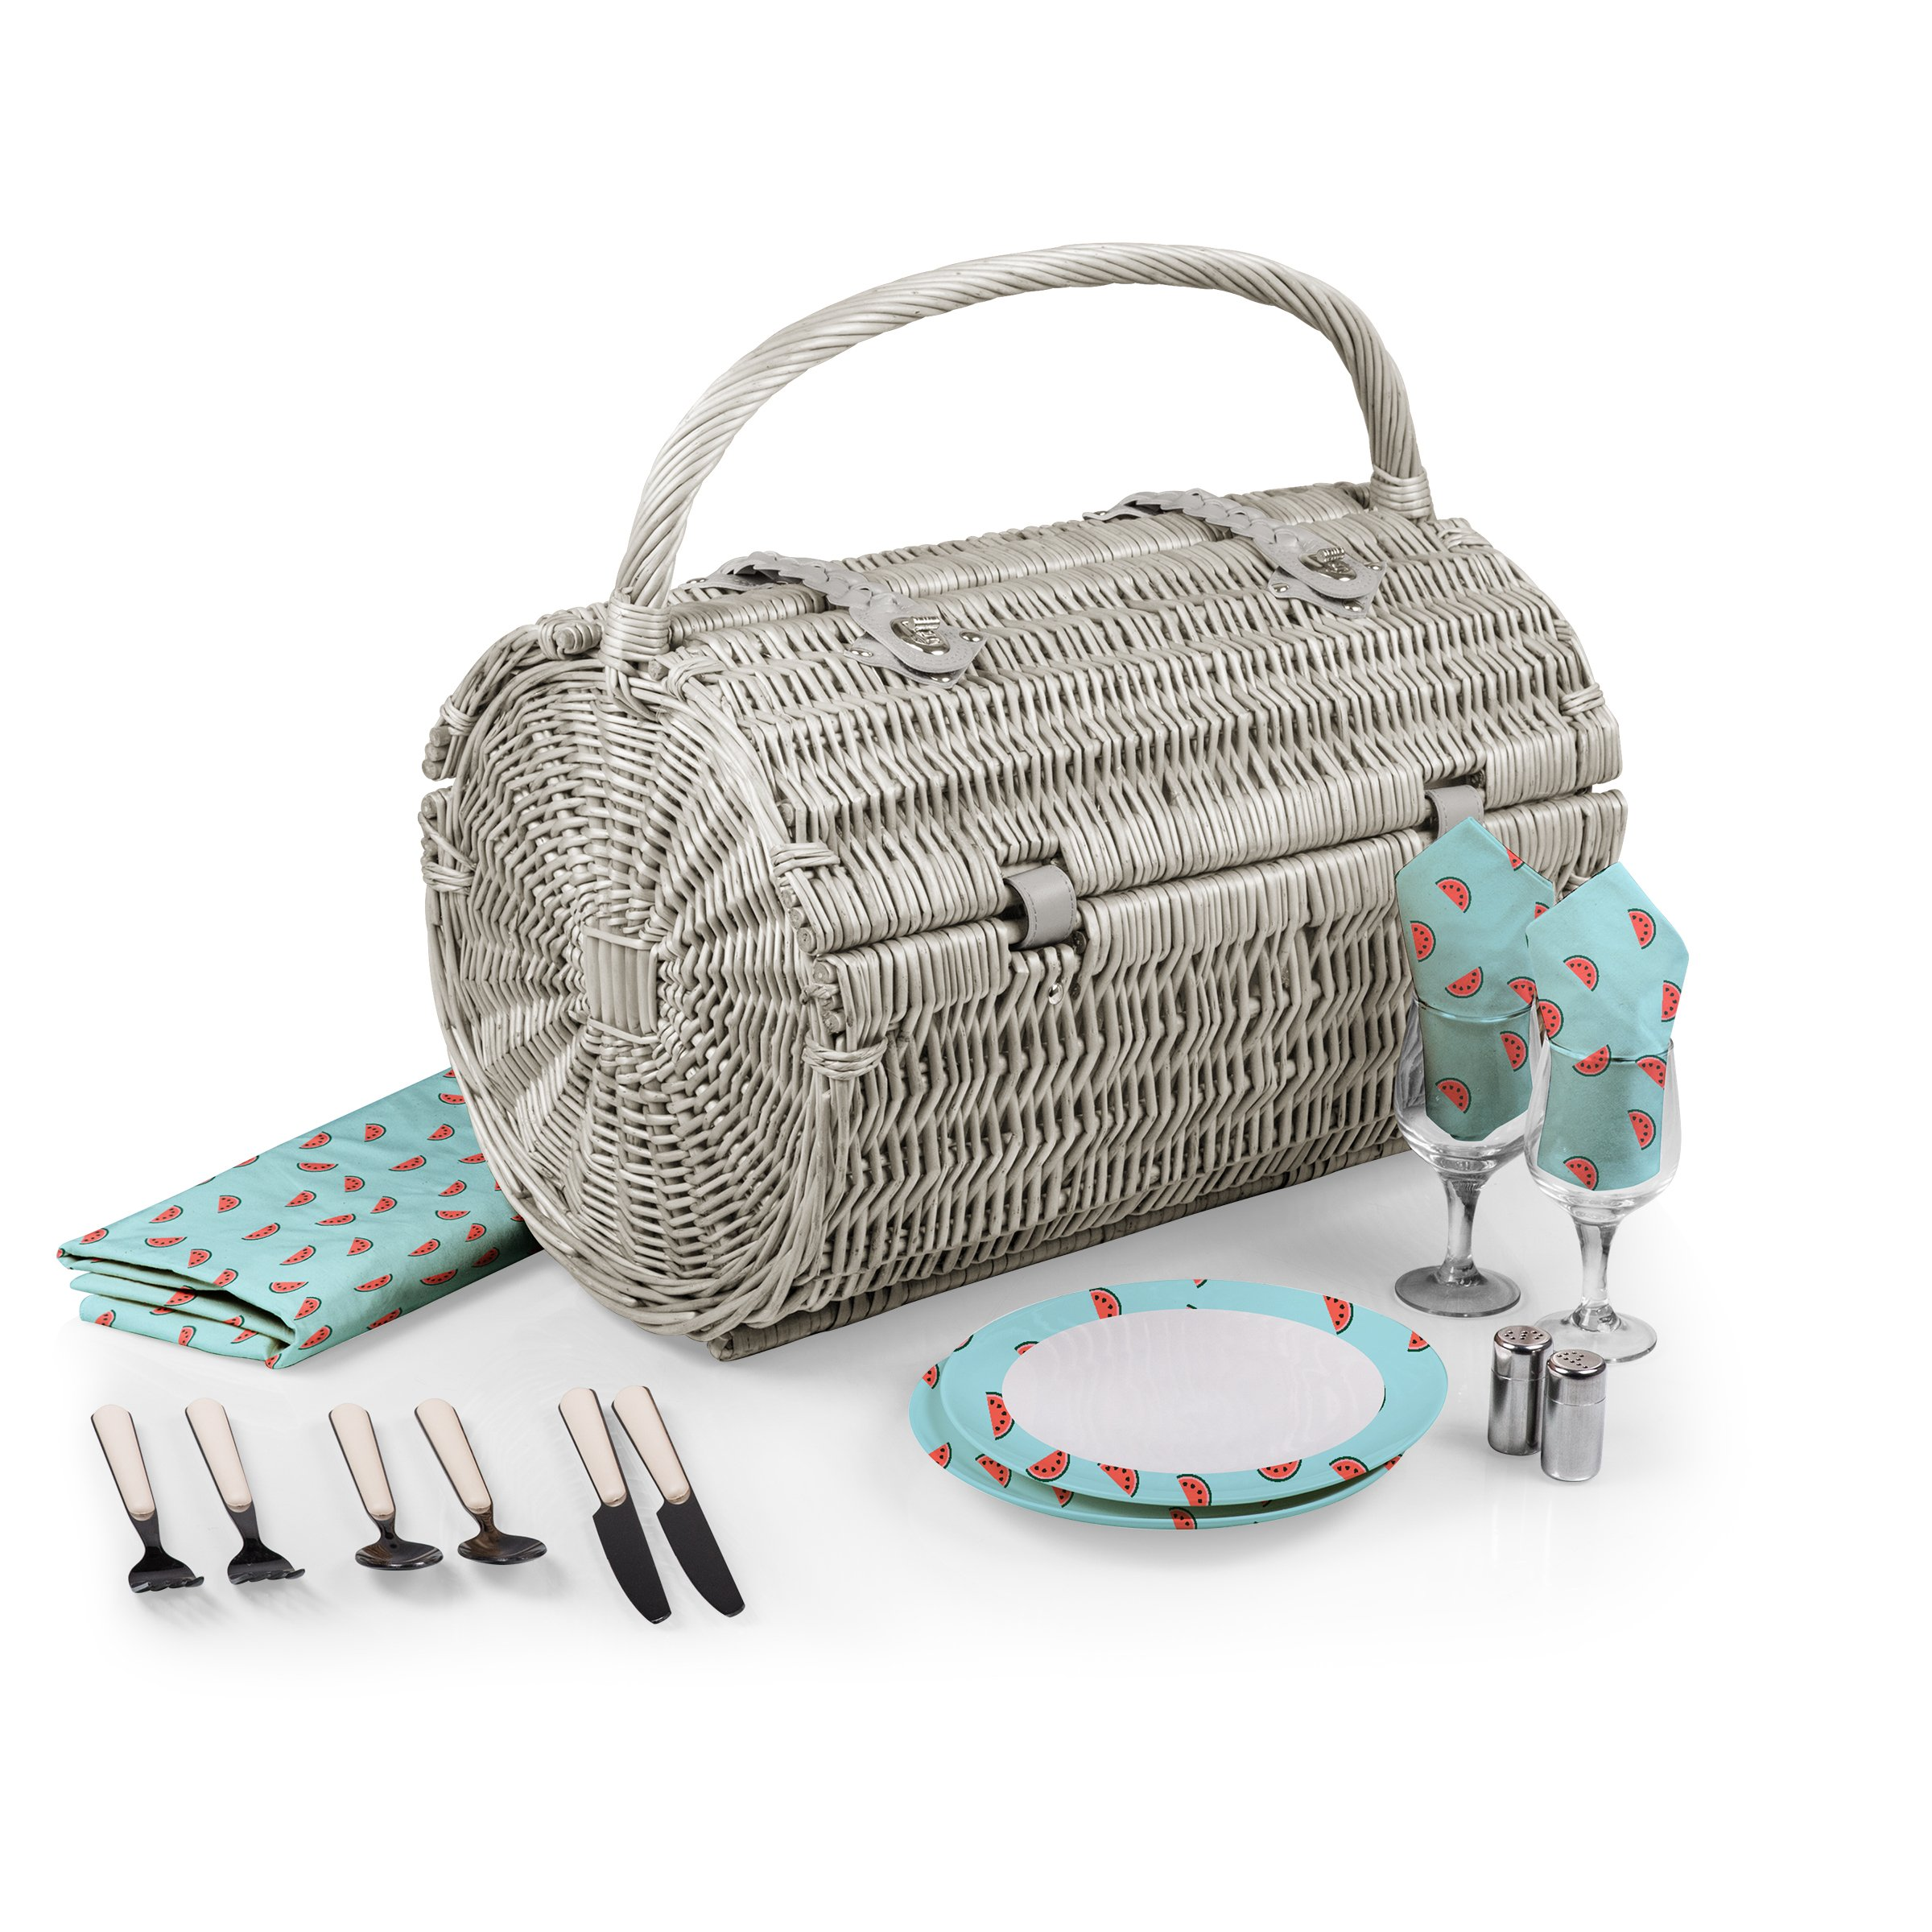 Picnic Time Barrel Picnic Basket with Service for Two, Watermelon Collection by PICNIC TIME